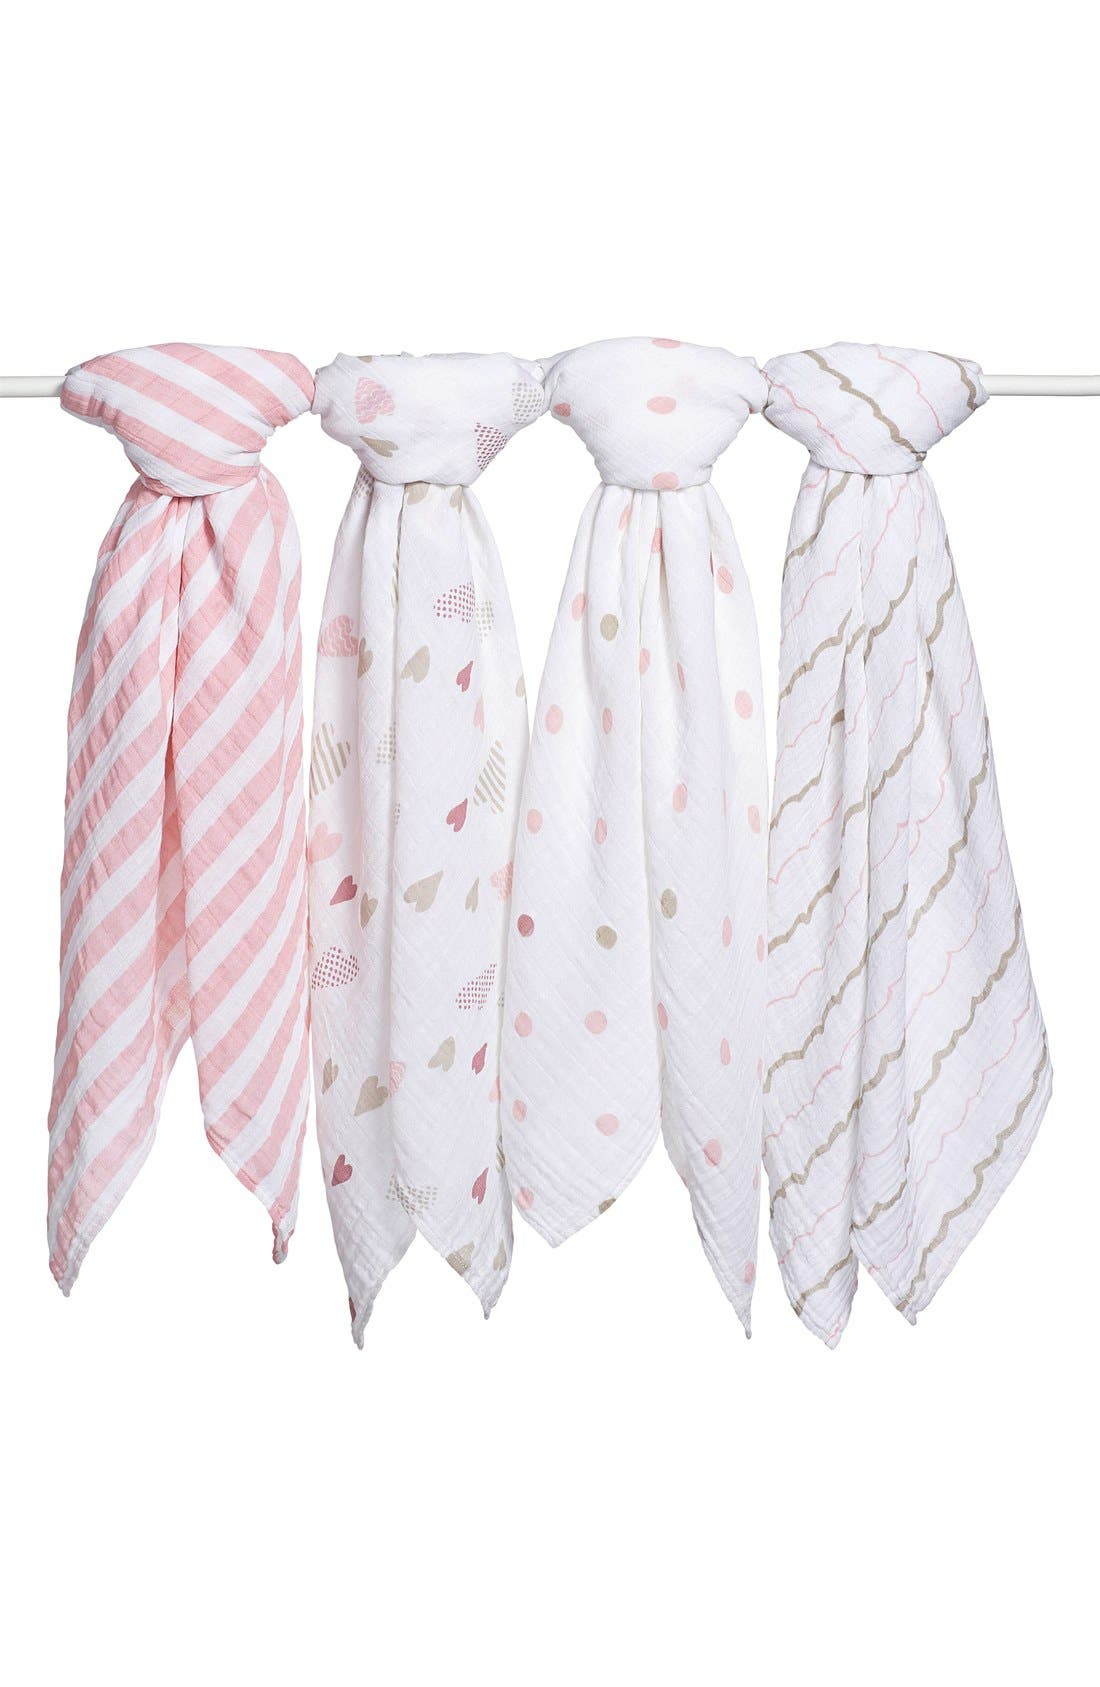 aden + anais Set of 4 Classic Swaddling Cloths